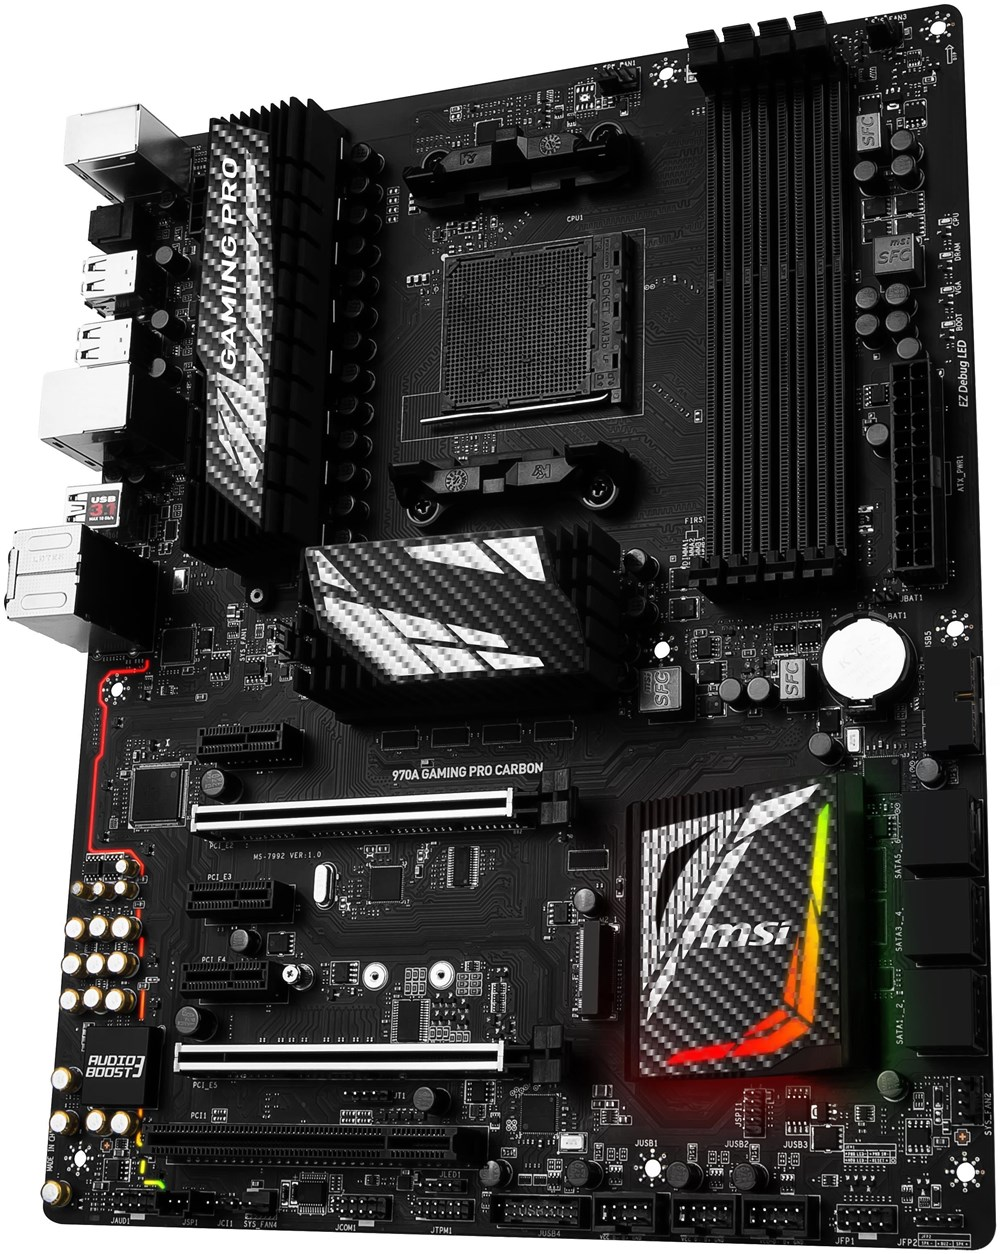 msi 970a gaming pro carbon motherboards computeruniverse. Black Bedroom Furniture Sets. Home Design Ideas